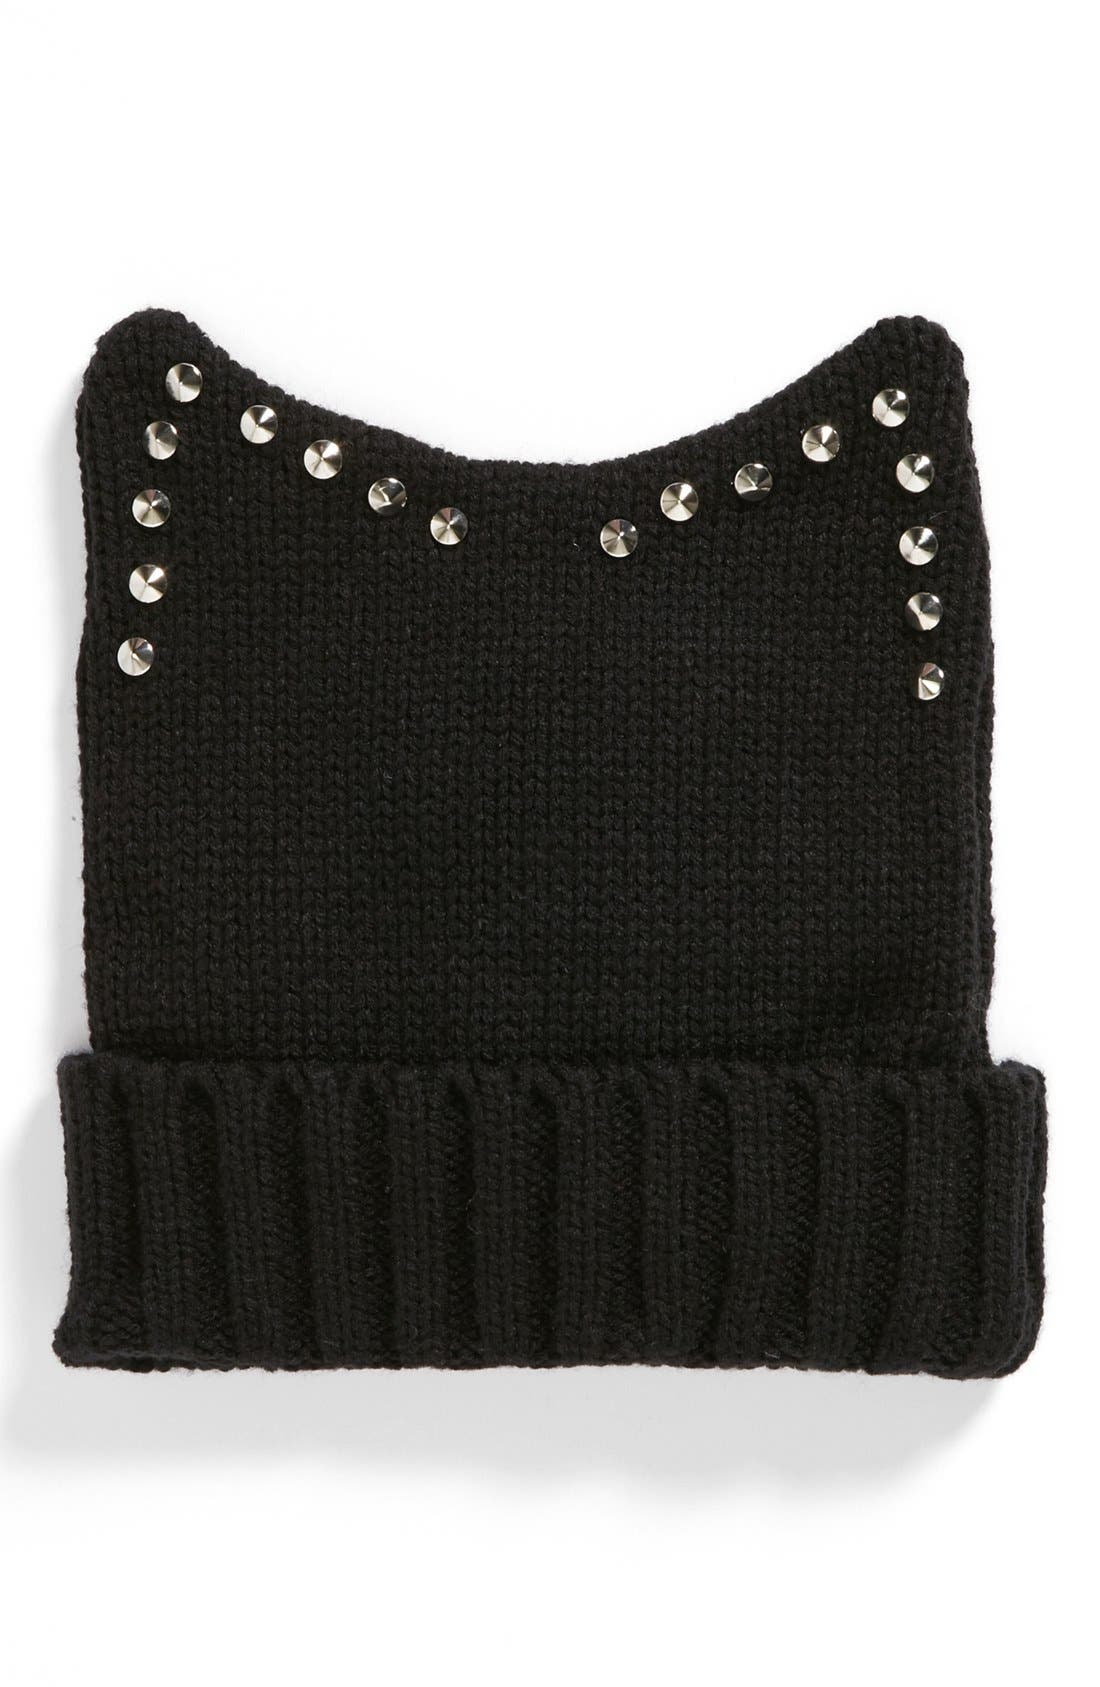 Main Image - The Accessory Collective Cat Ears Knit Beanie (Girls)